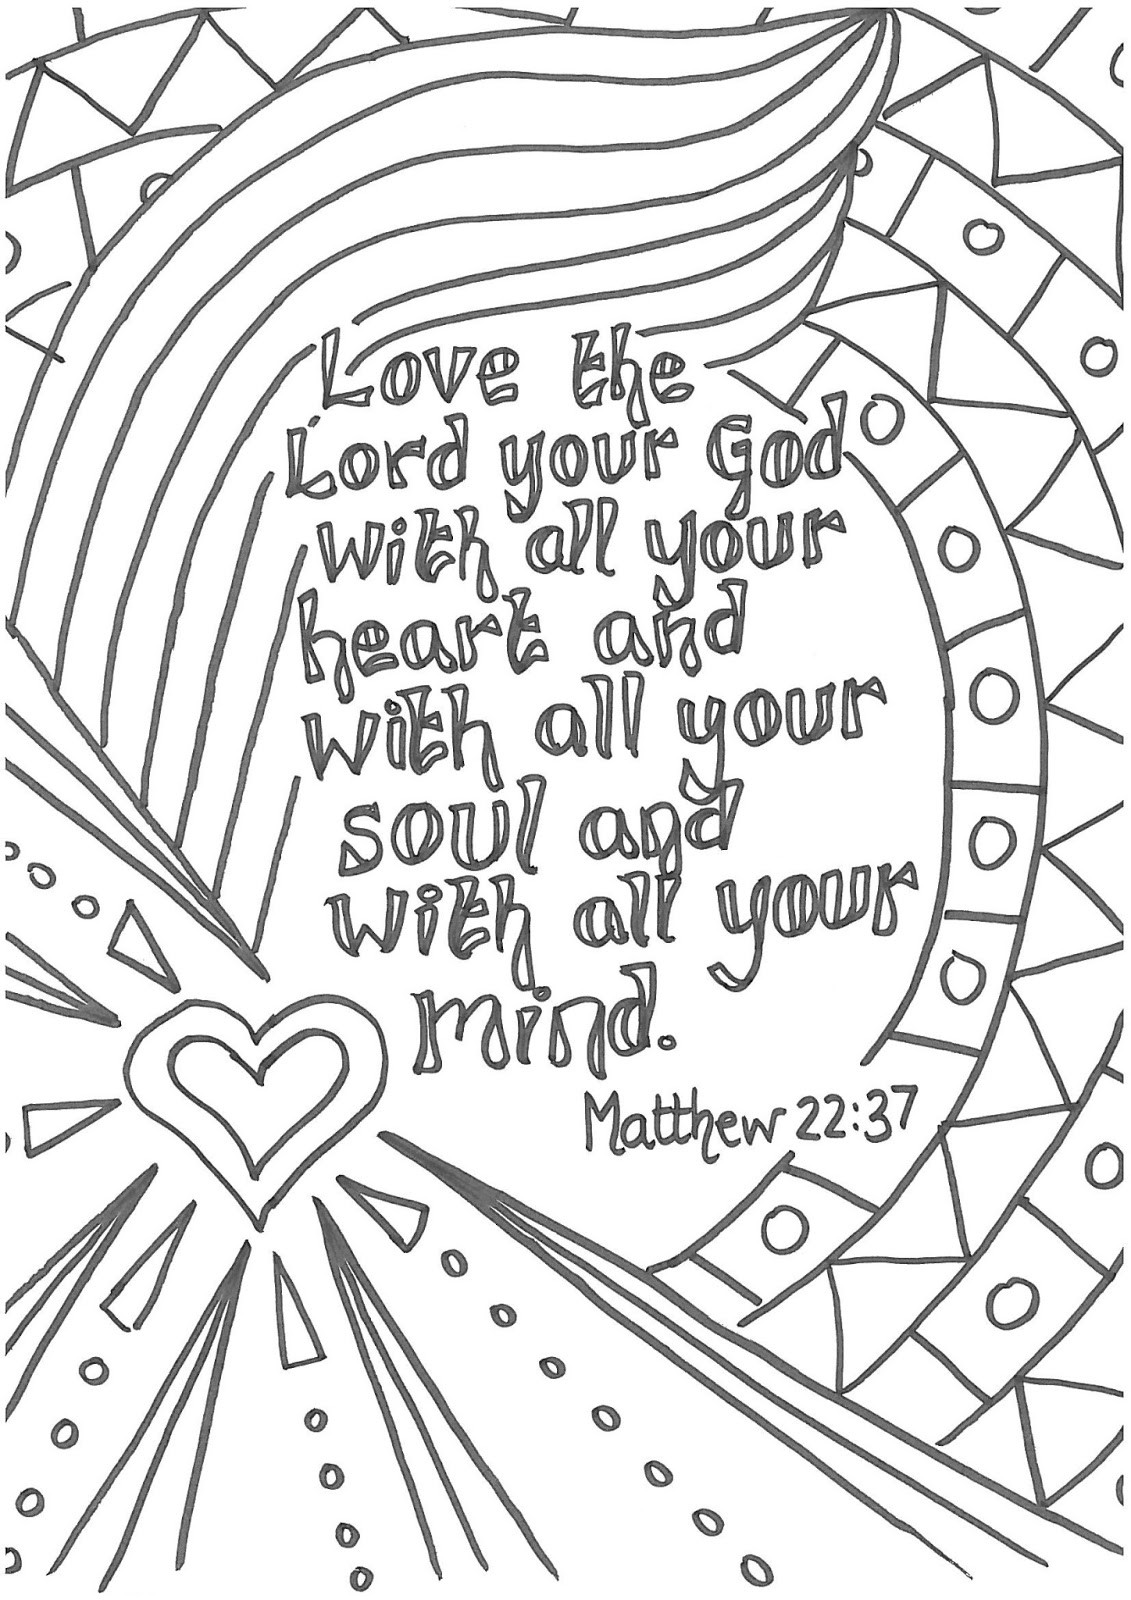 Prayer Coloring Pages For Kids  Flame Creative Children s Ministry Prayers to colour in